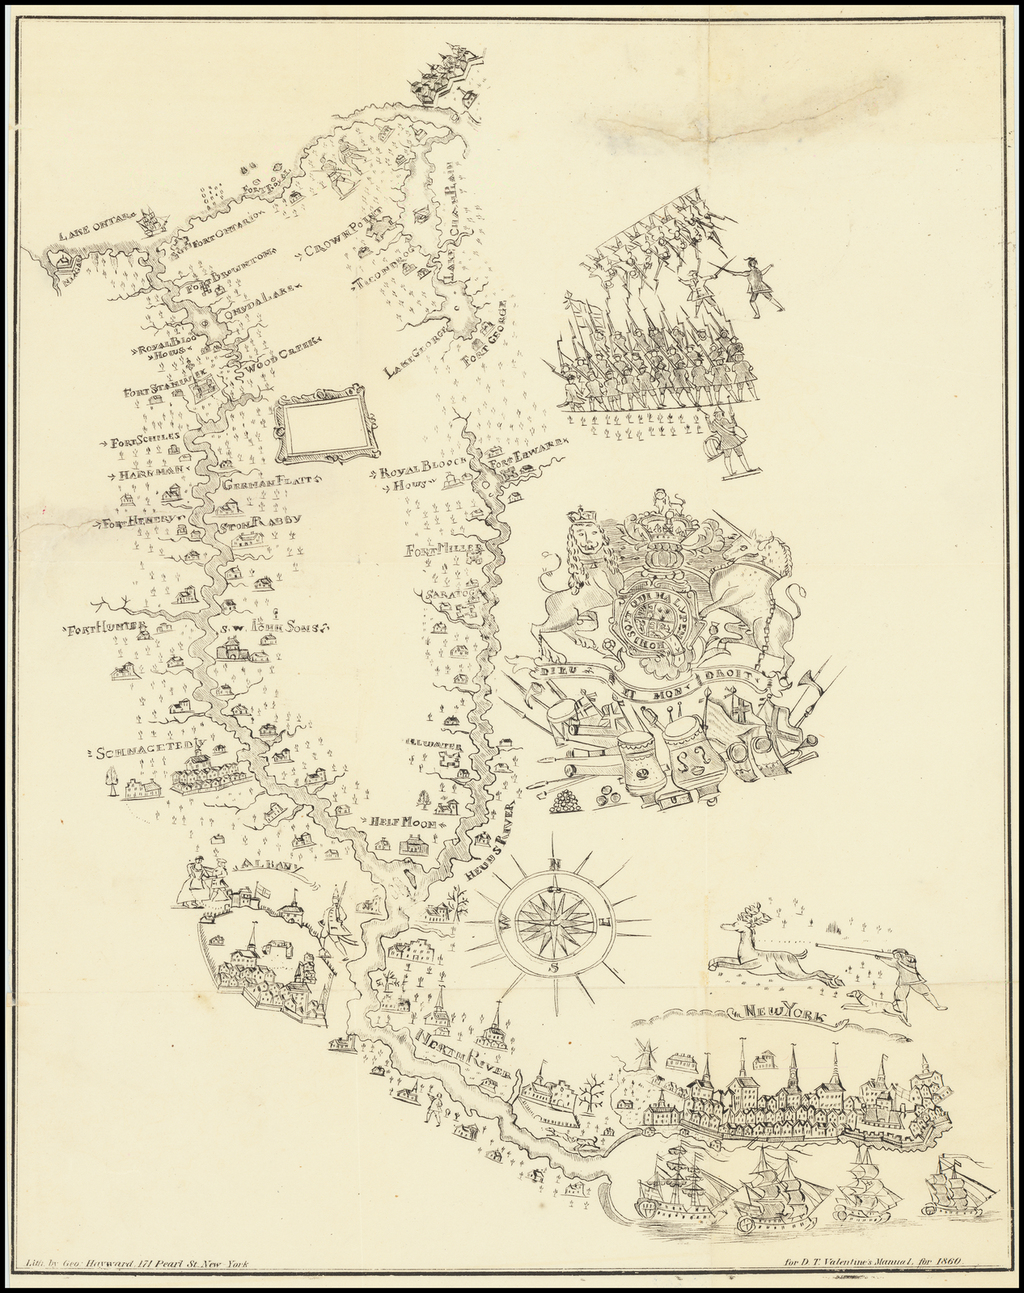 [New York City to Lake Ontario -- Powder Horn Illustration] By Valentine's Manual